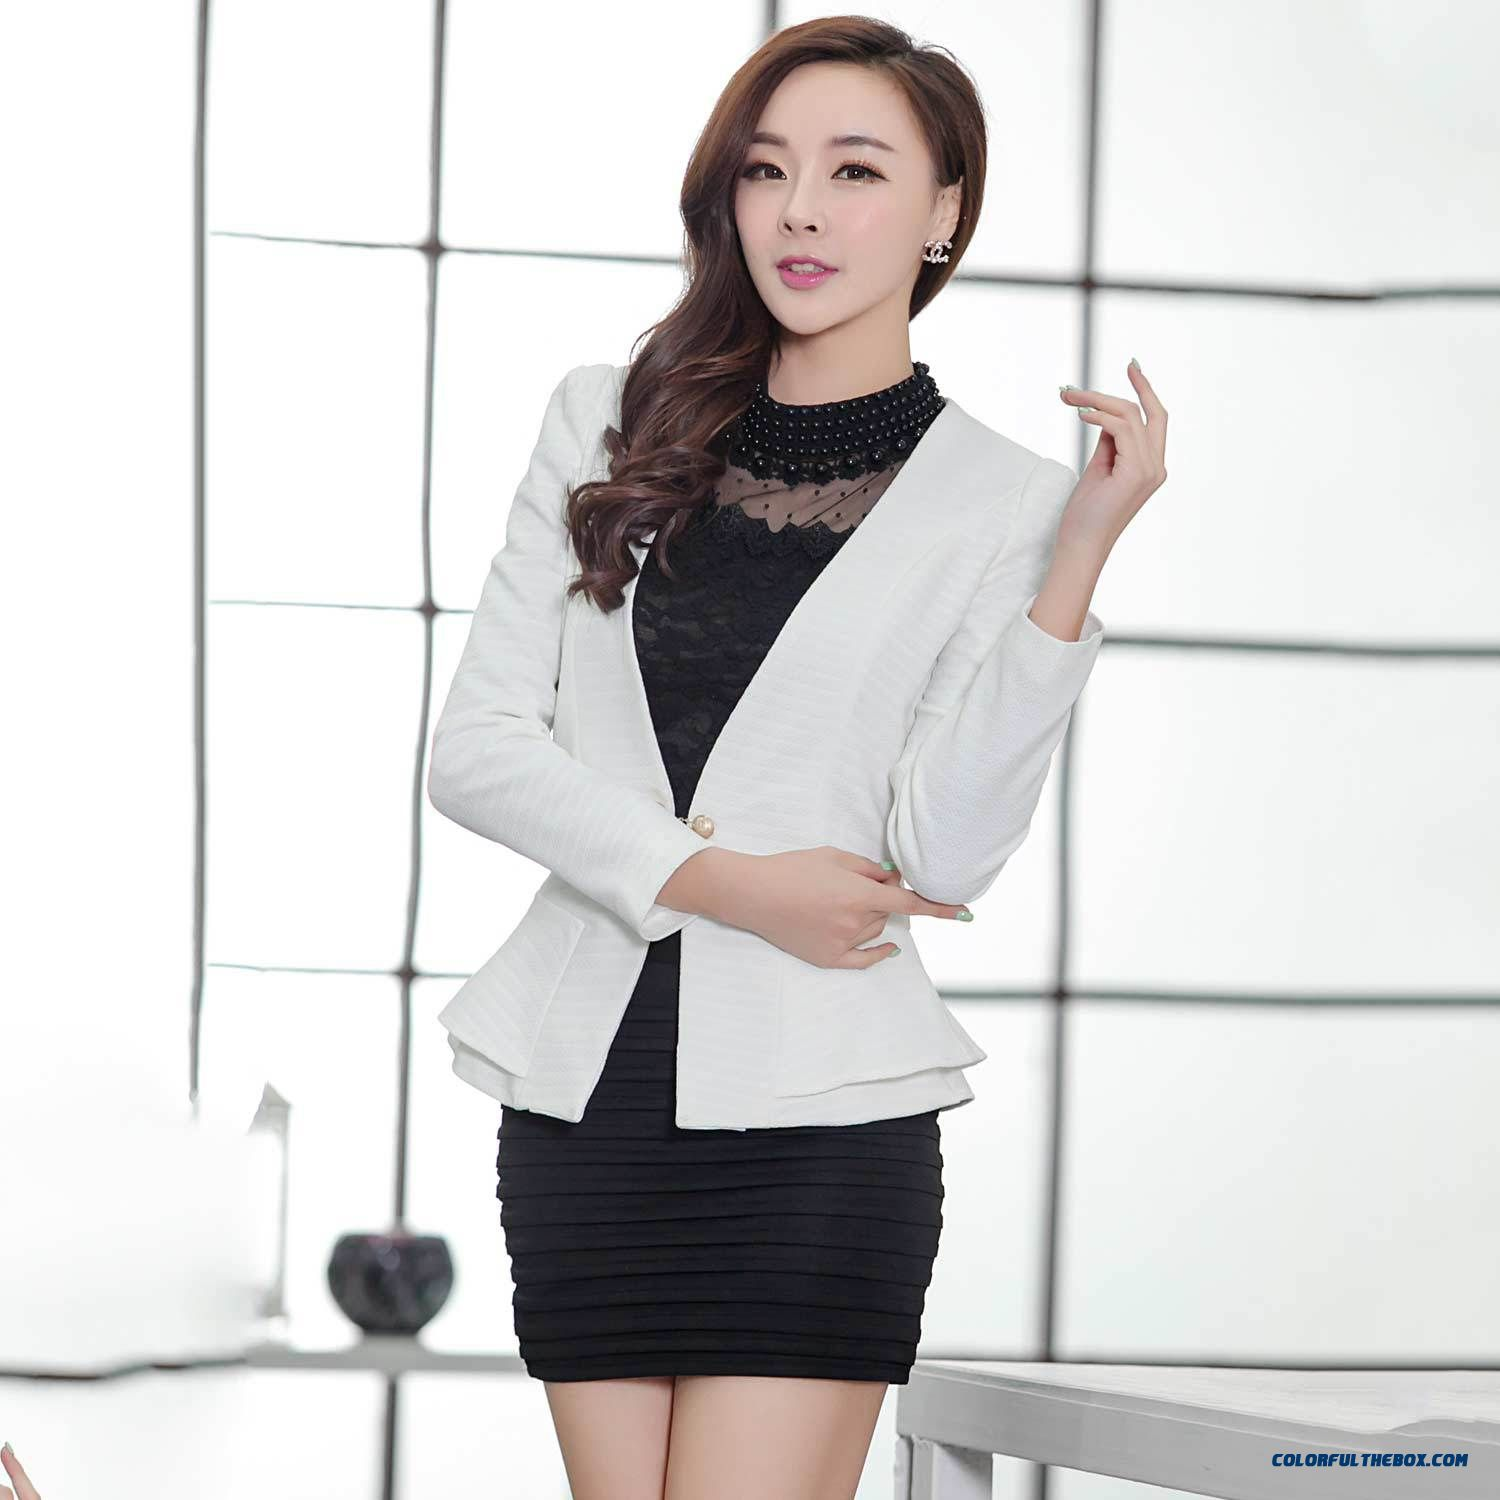 2016 Spring Suit Korean Slim Skirt Hemline Small Suit Two Buckle Chain Design For Women